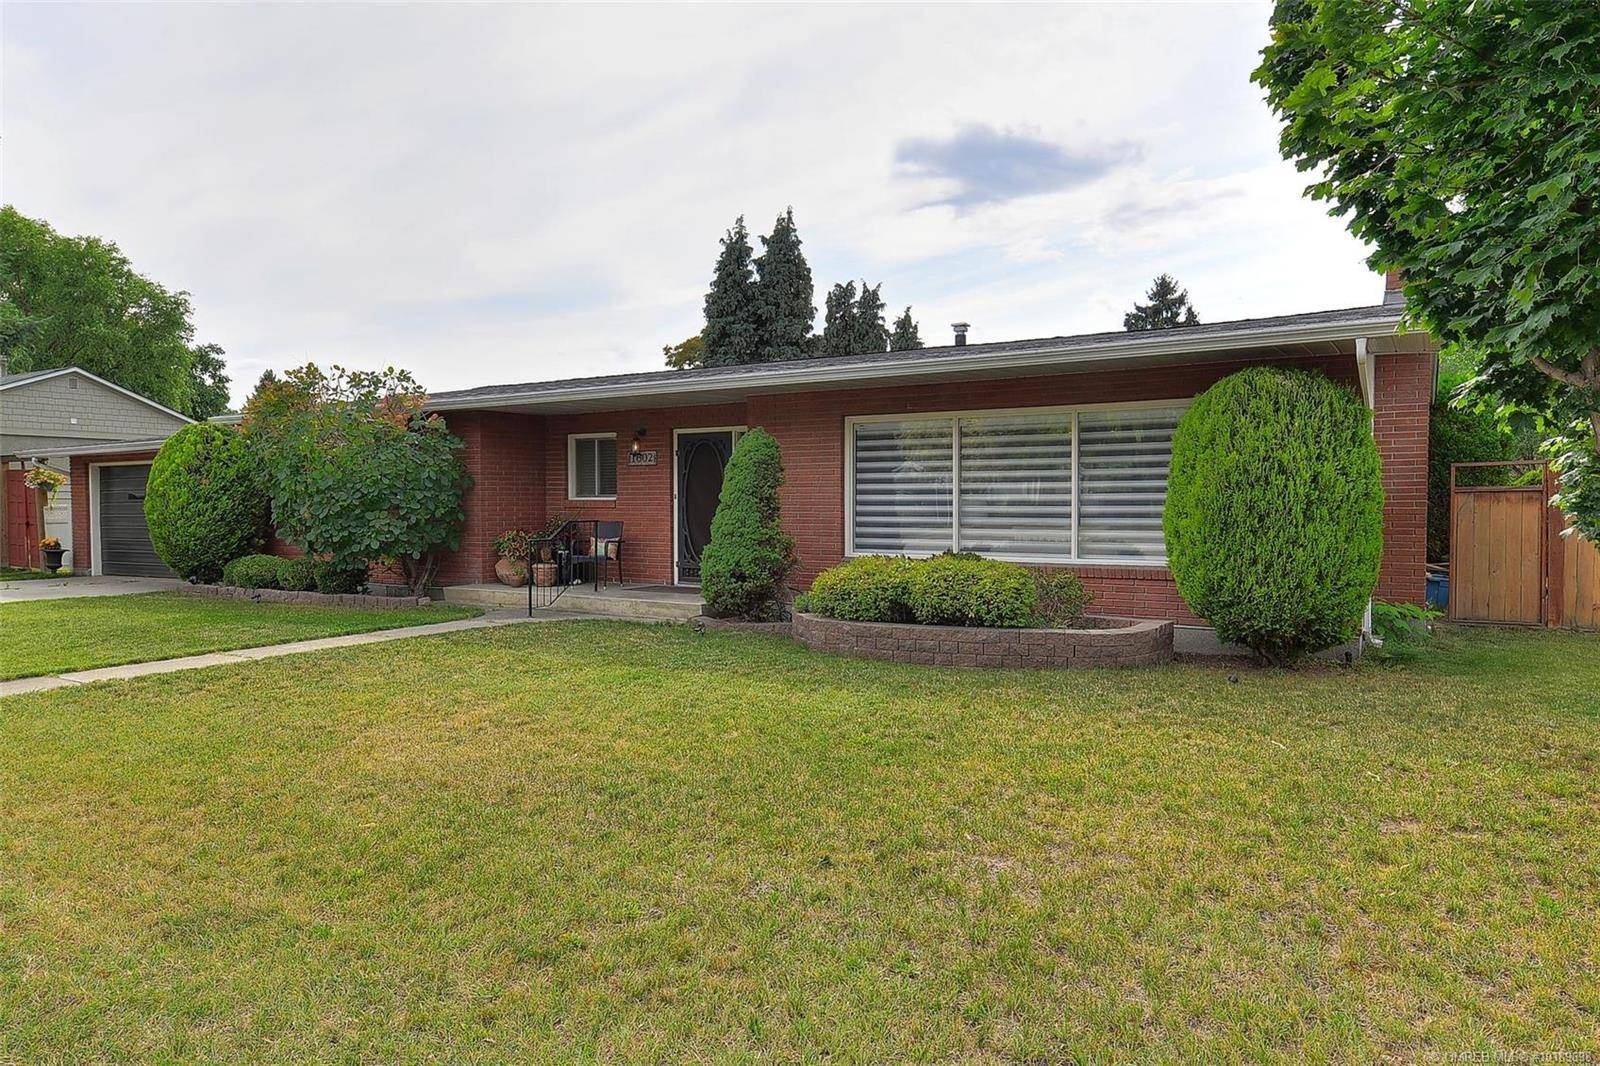 House for sale at 1602 Richmond St Kelowna British Columbia - MLS: 10189698